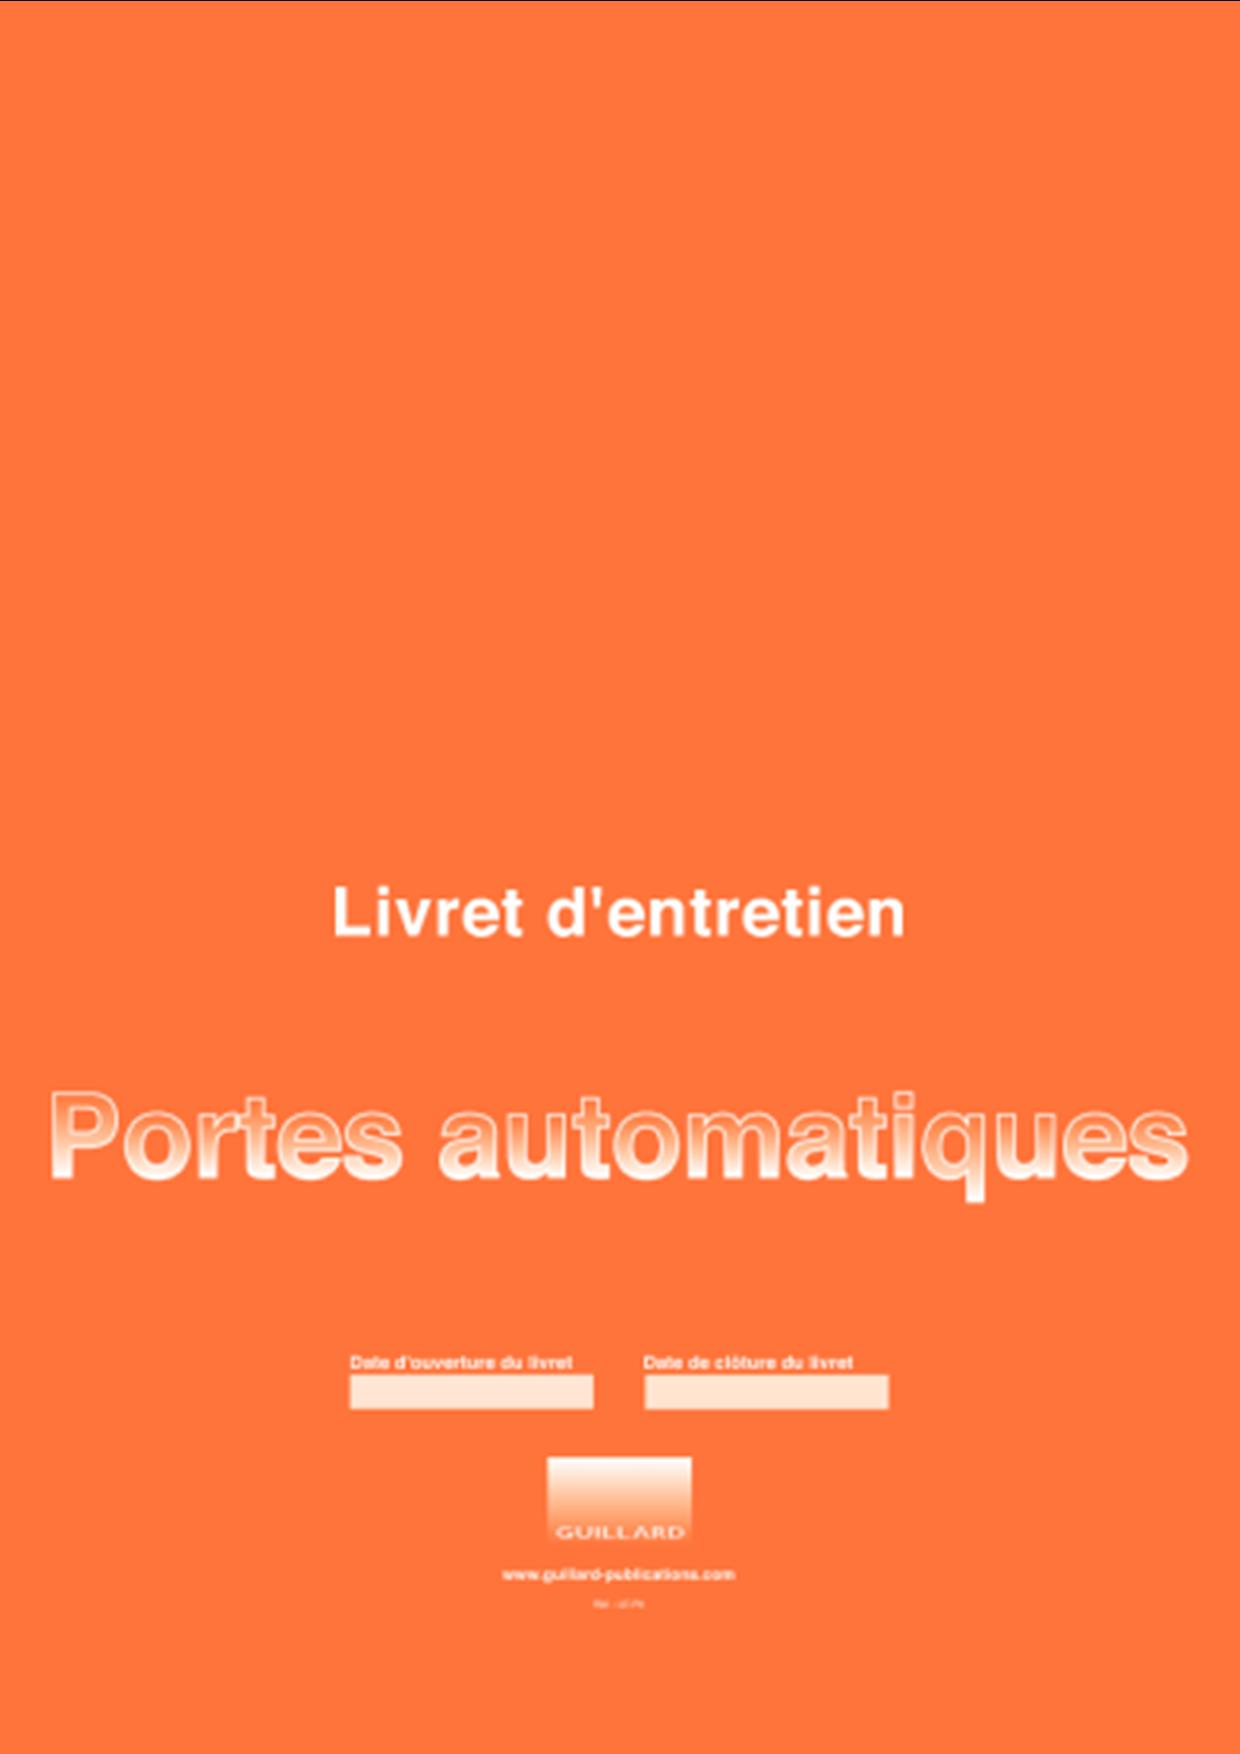 Contrat de maintenance porte automatique pdf